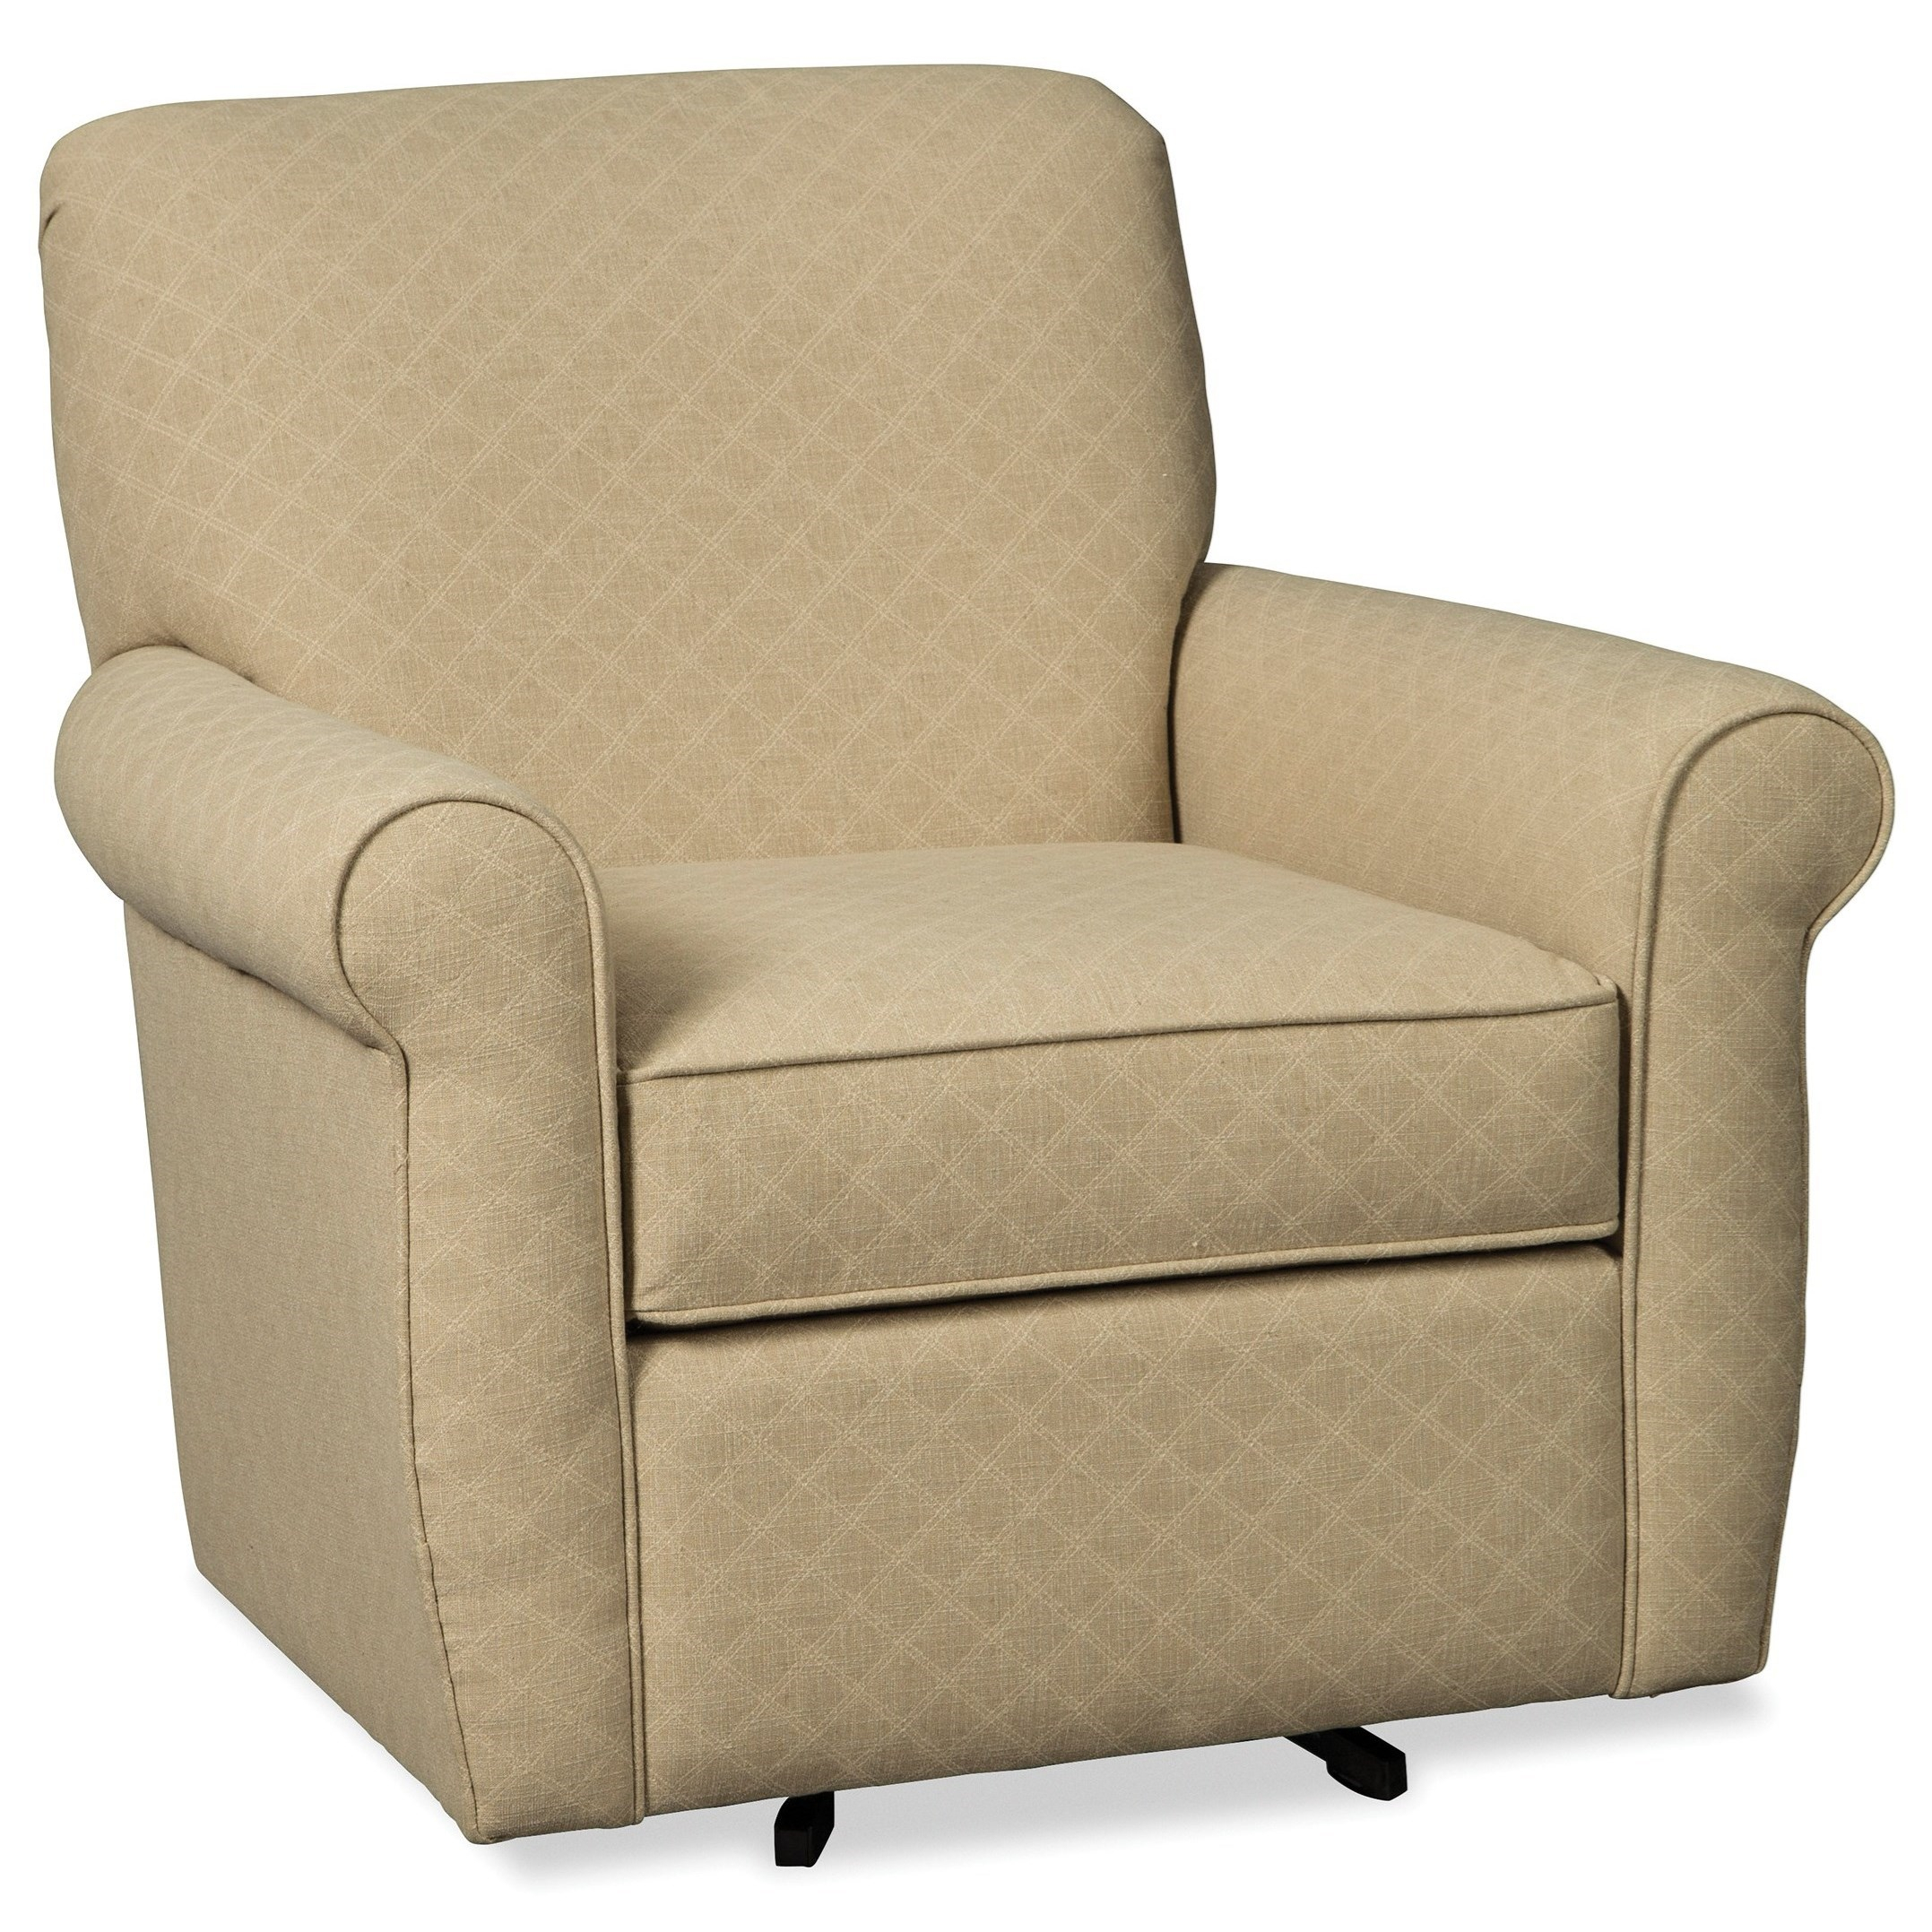 075610 075710 Casual Swivel Chair | Stoney Creek Furniture In Amari Swivel Accent Chairs (View 12 of 20)